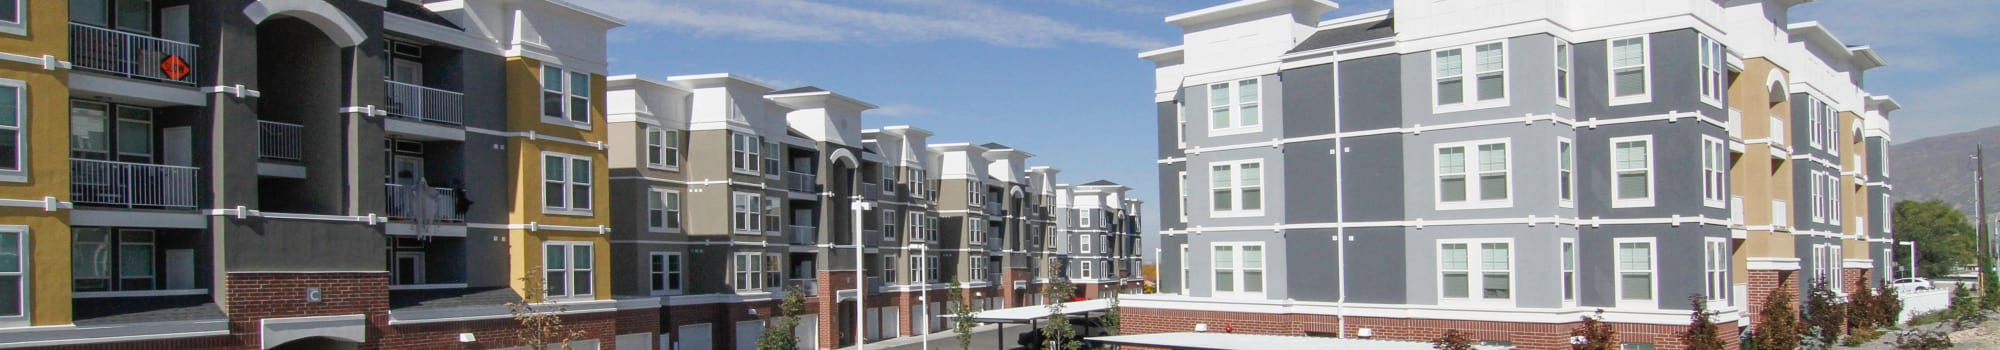 Learn more about our apartment homes for rent at The Hills at Renaissance in Woods Cross